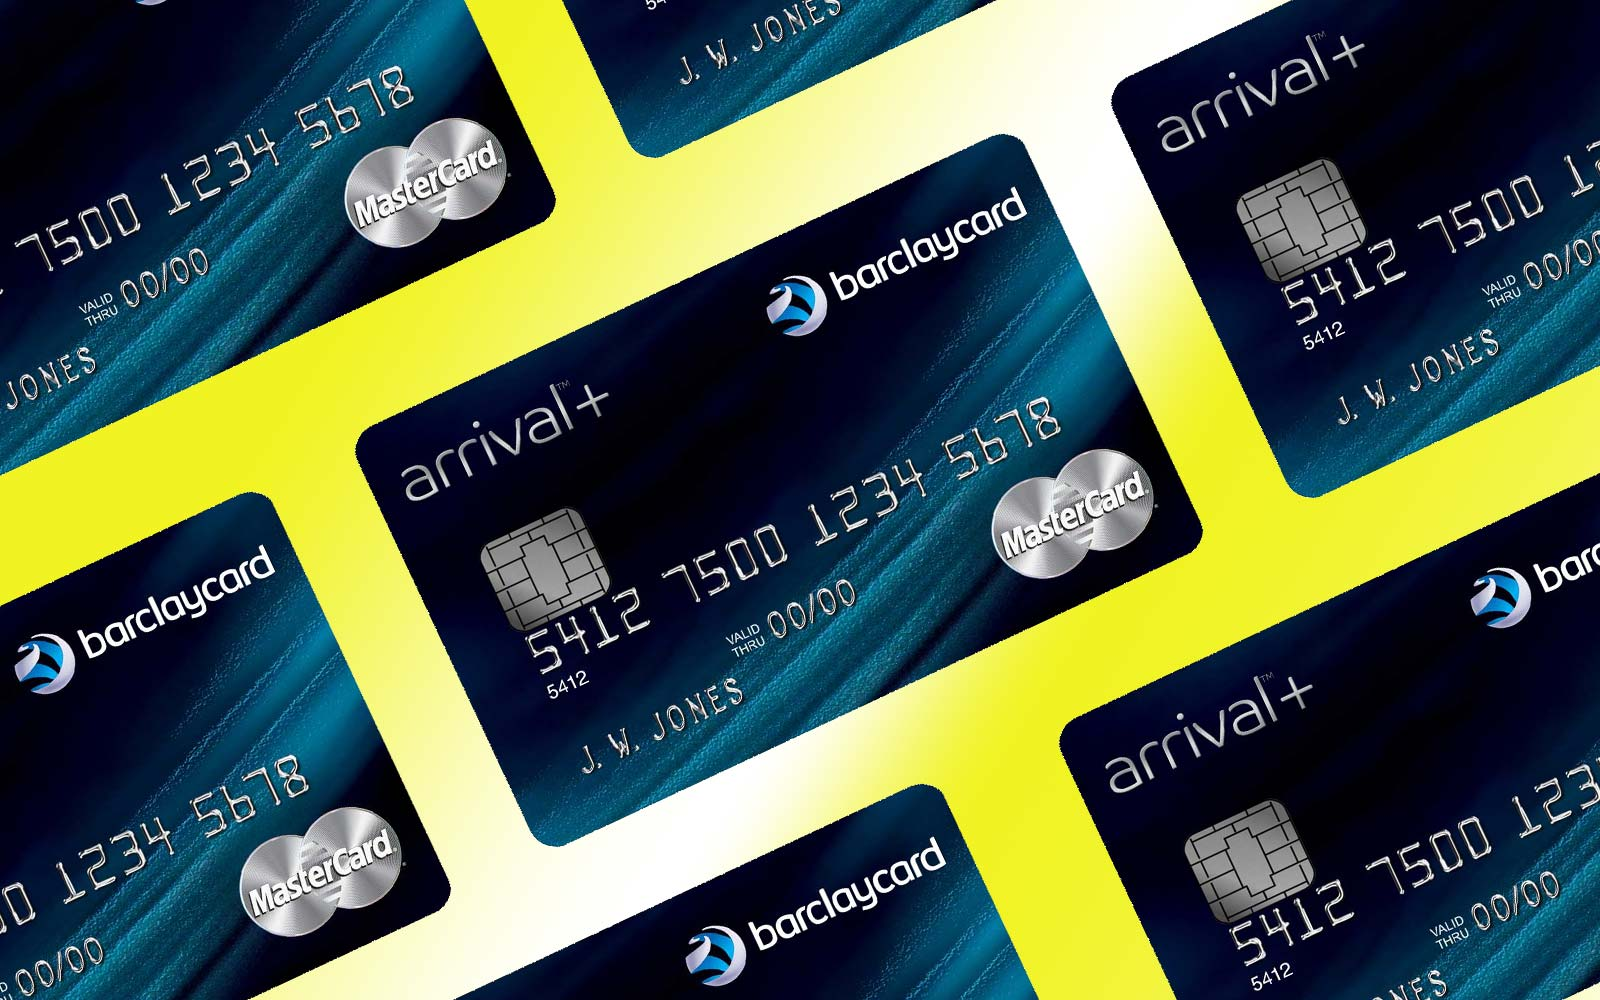 Barclaycard Arrival Plus World Elite MasterCard Credit Card